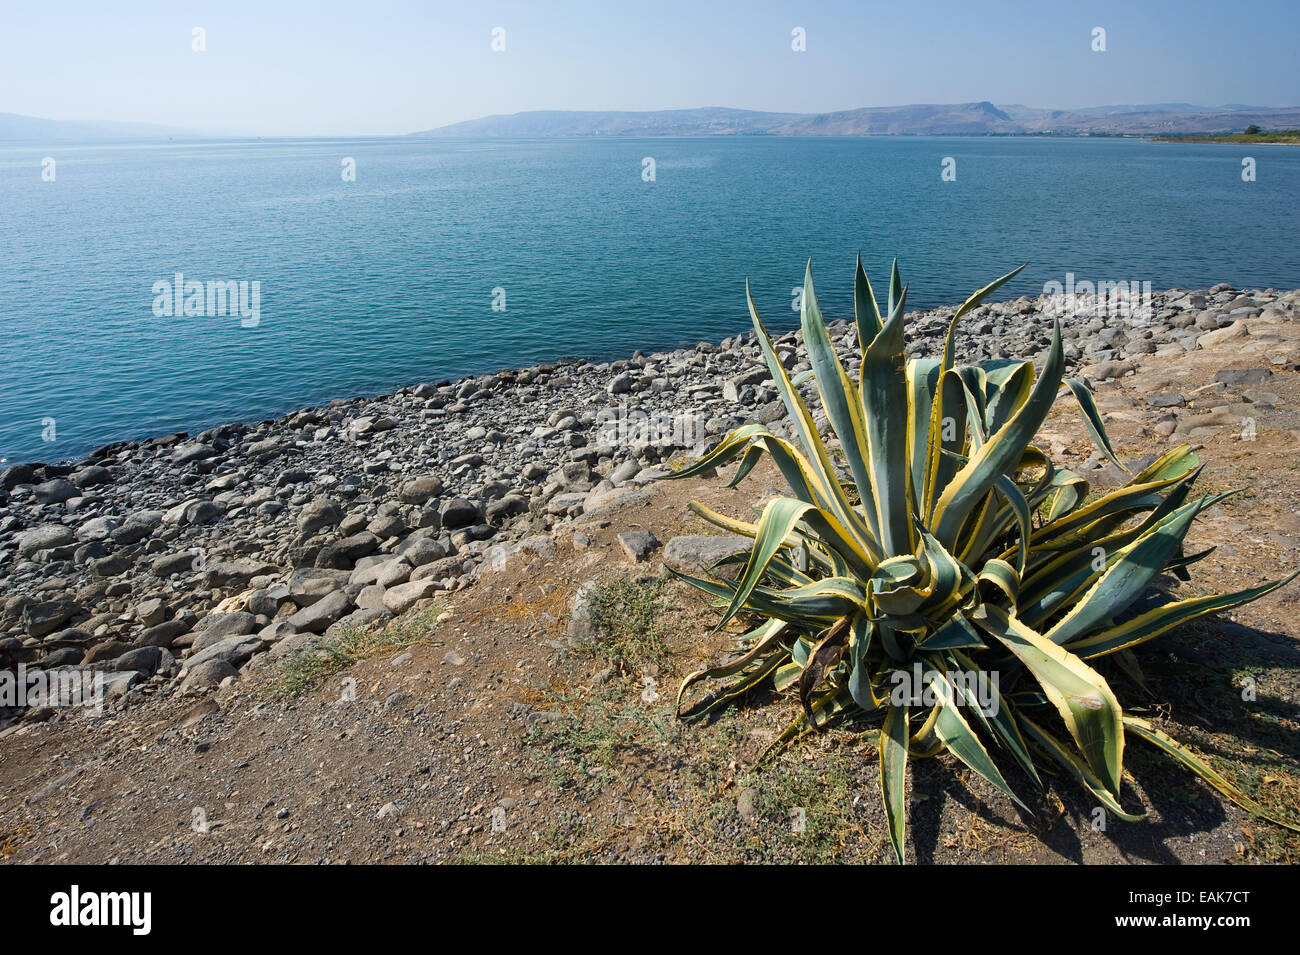 Cactus near the beach of Capernaum on the sea of Galilee Stock Photo